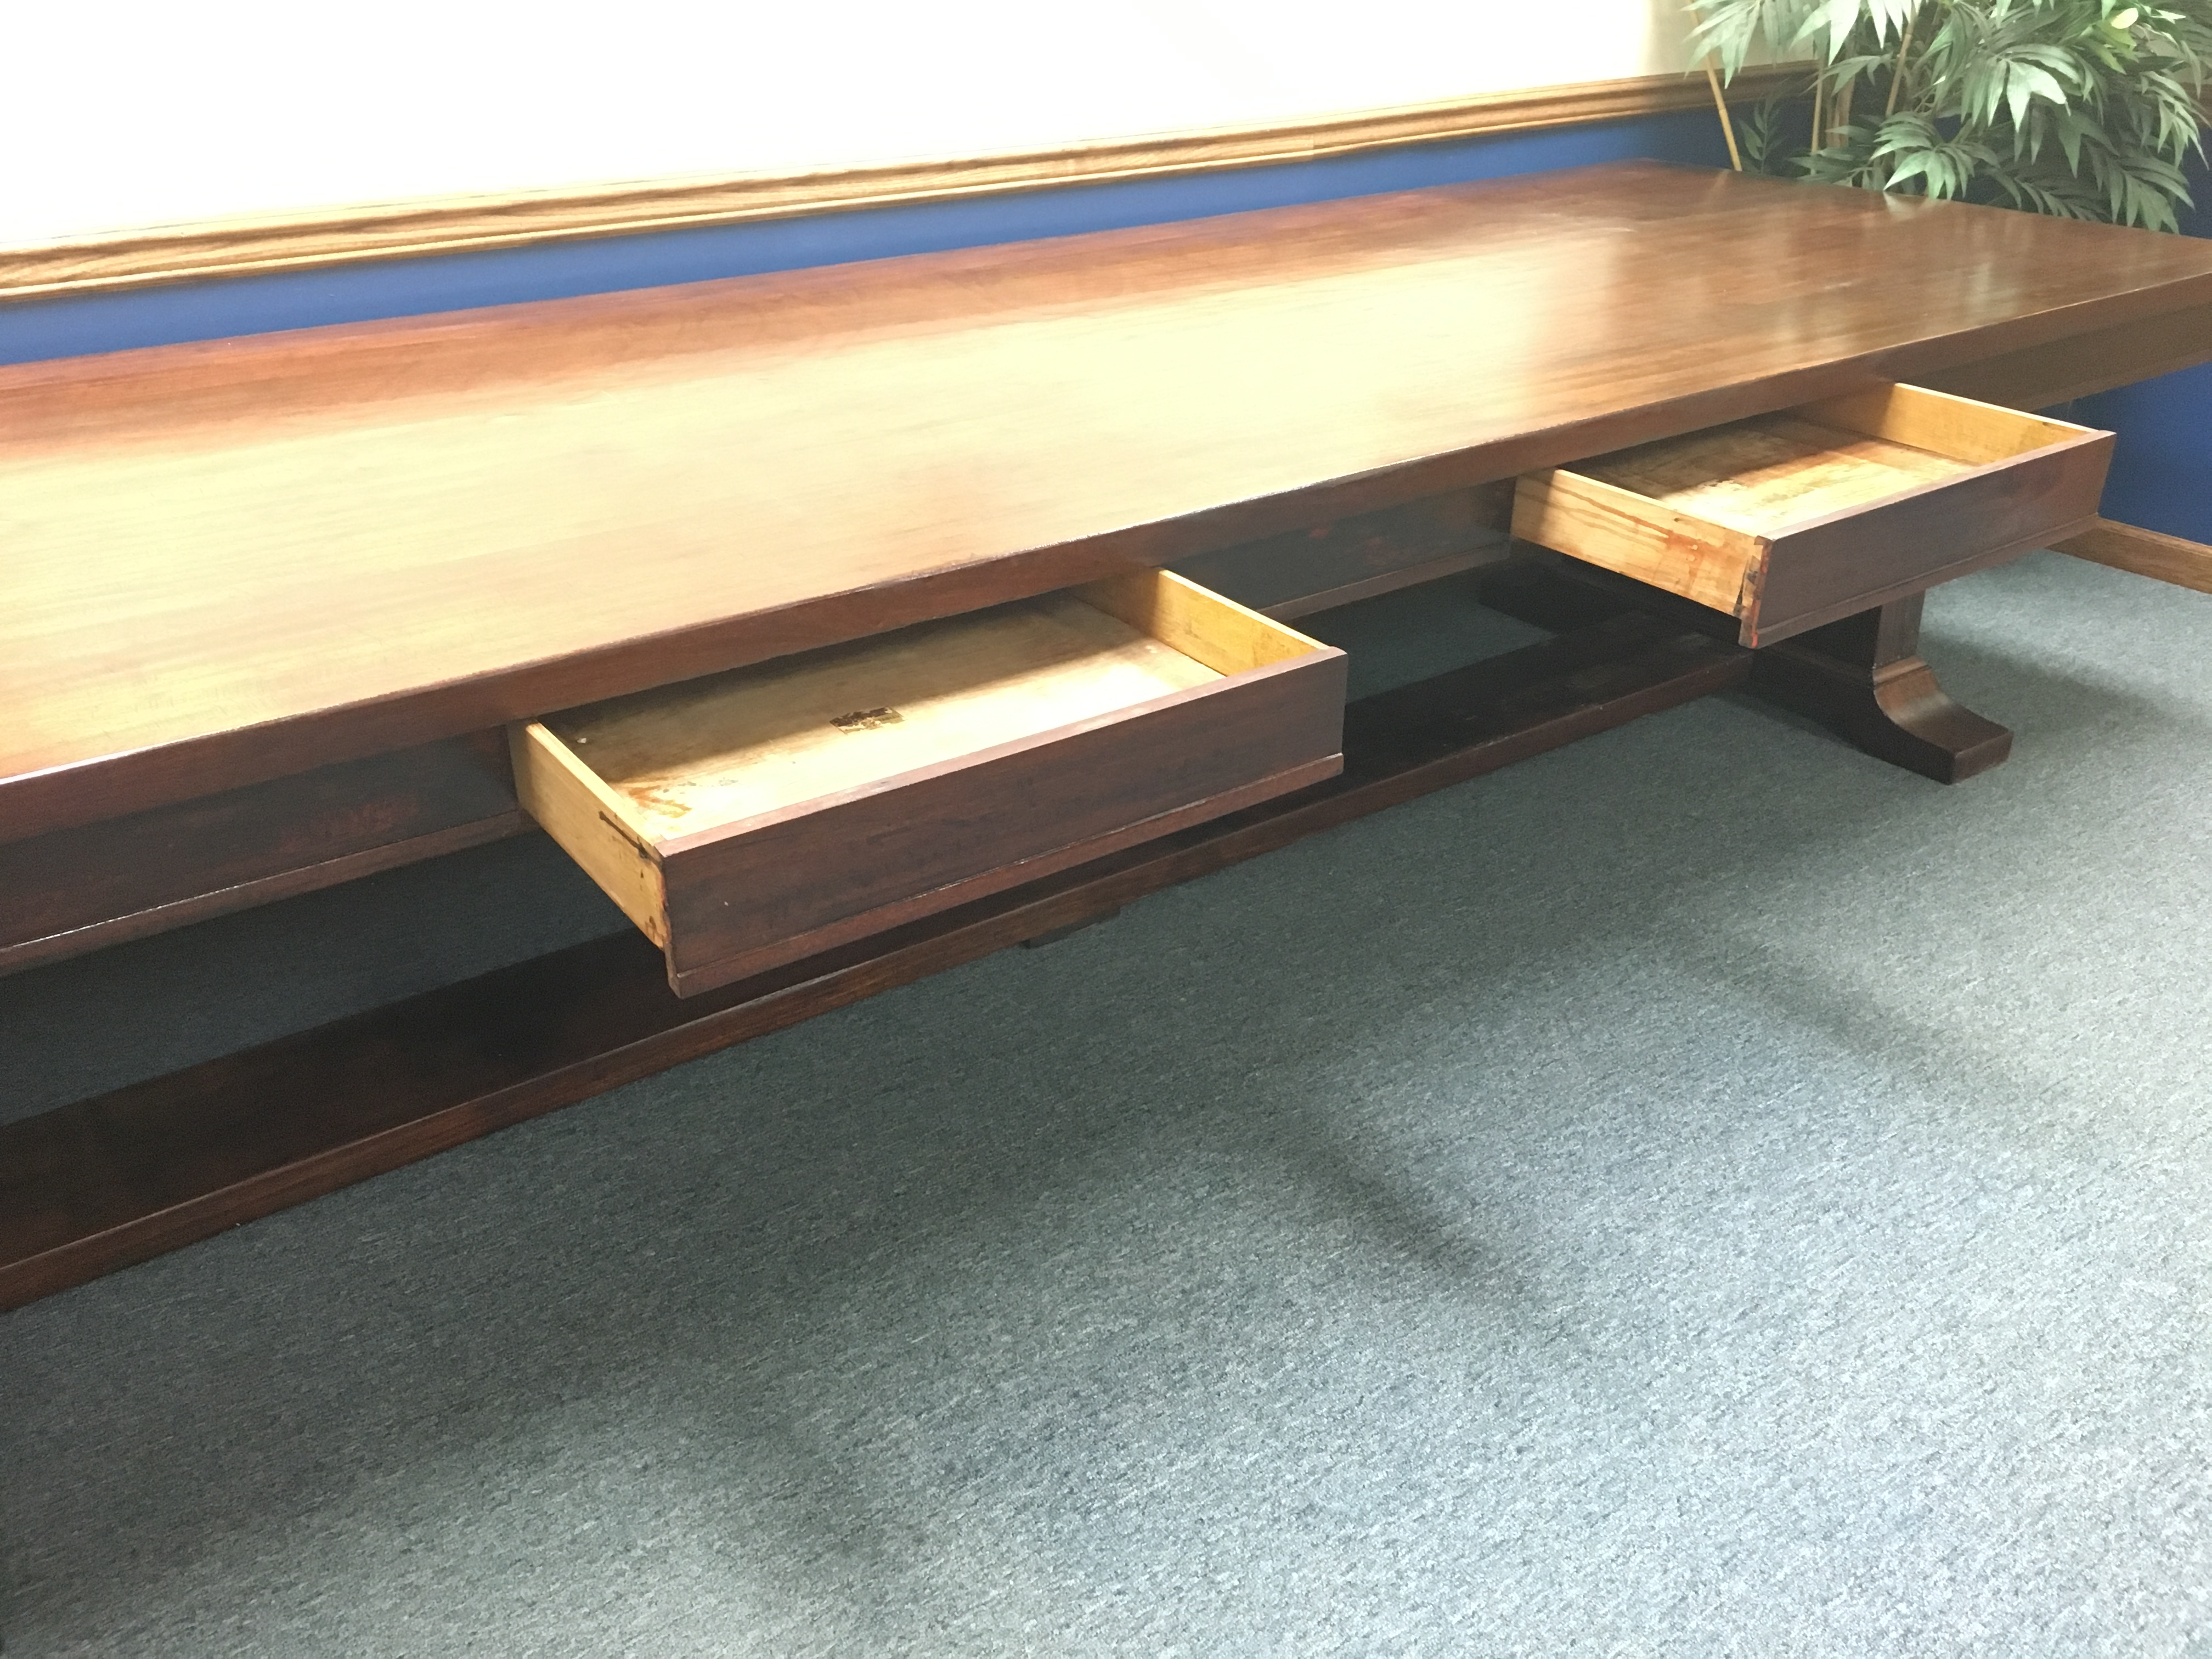 4 x 12 Samson Conference Director s Table by Mutschler Brothers